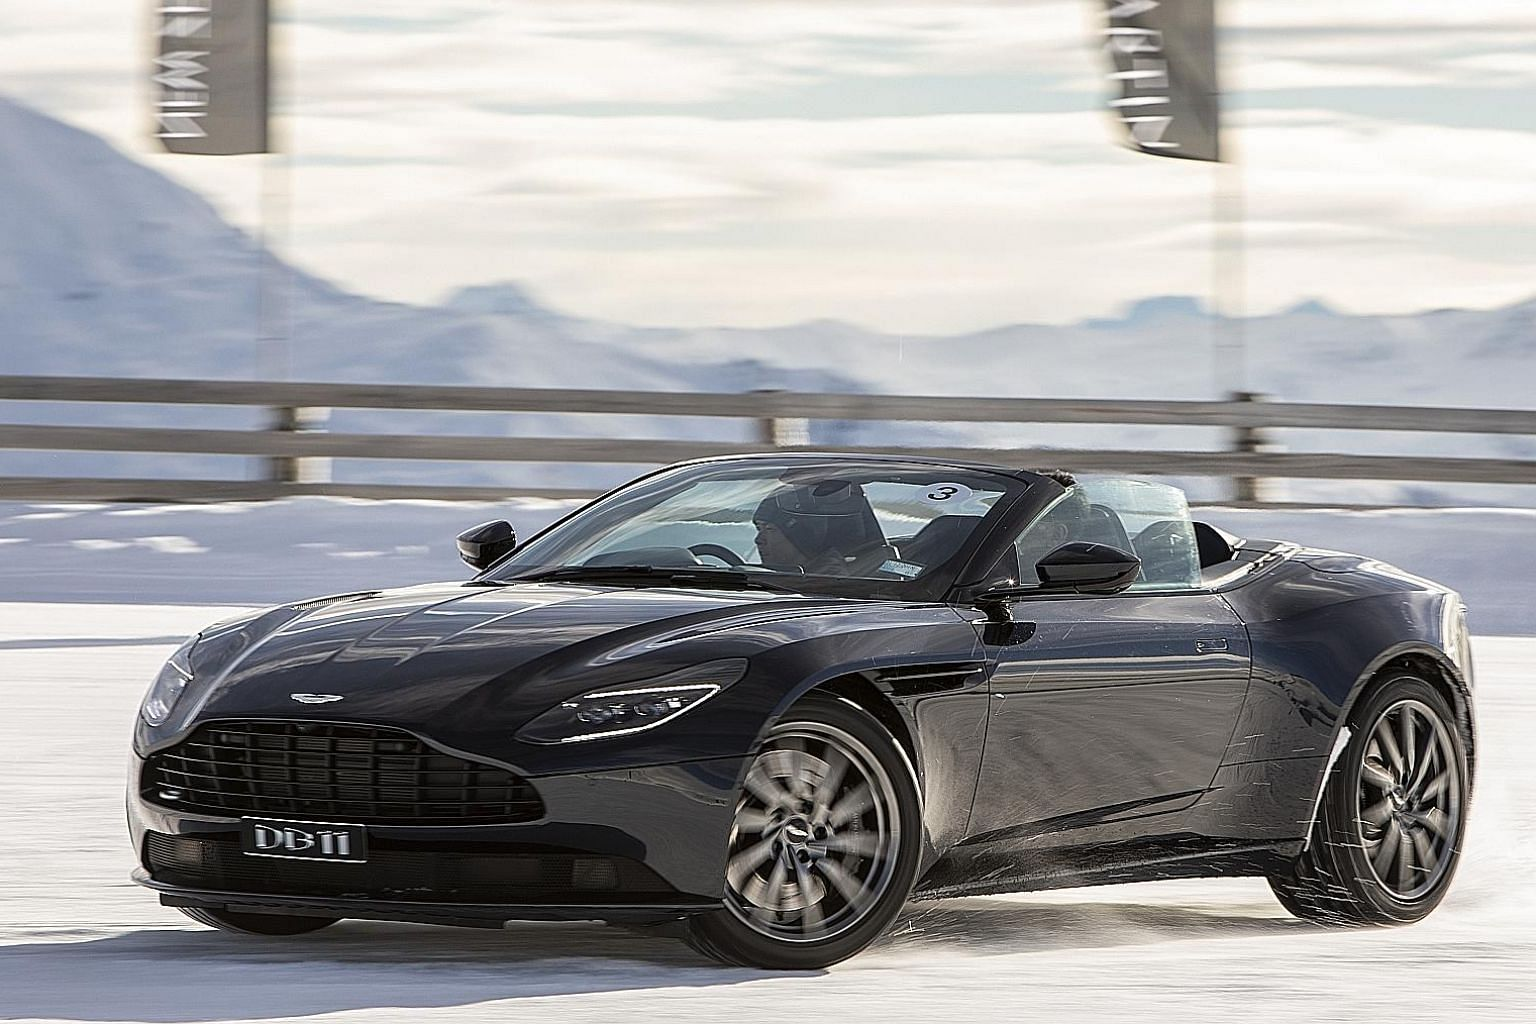 The Aston Martin DB11 Volante has 503bhp and 675Nm of twisting force on tap.